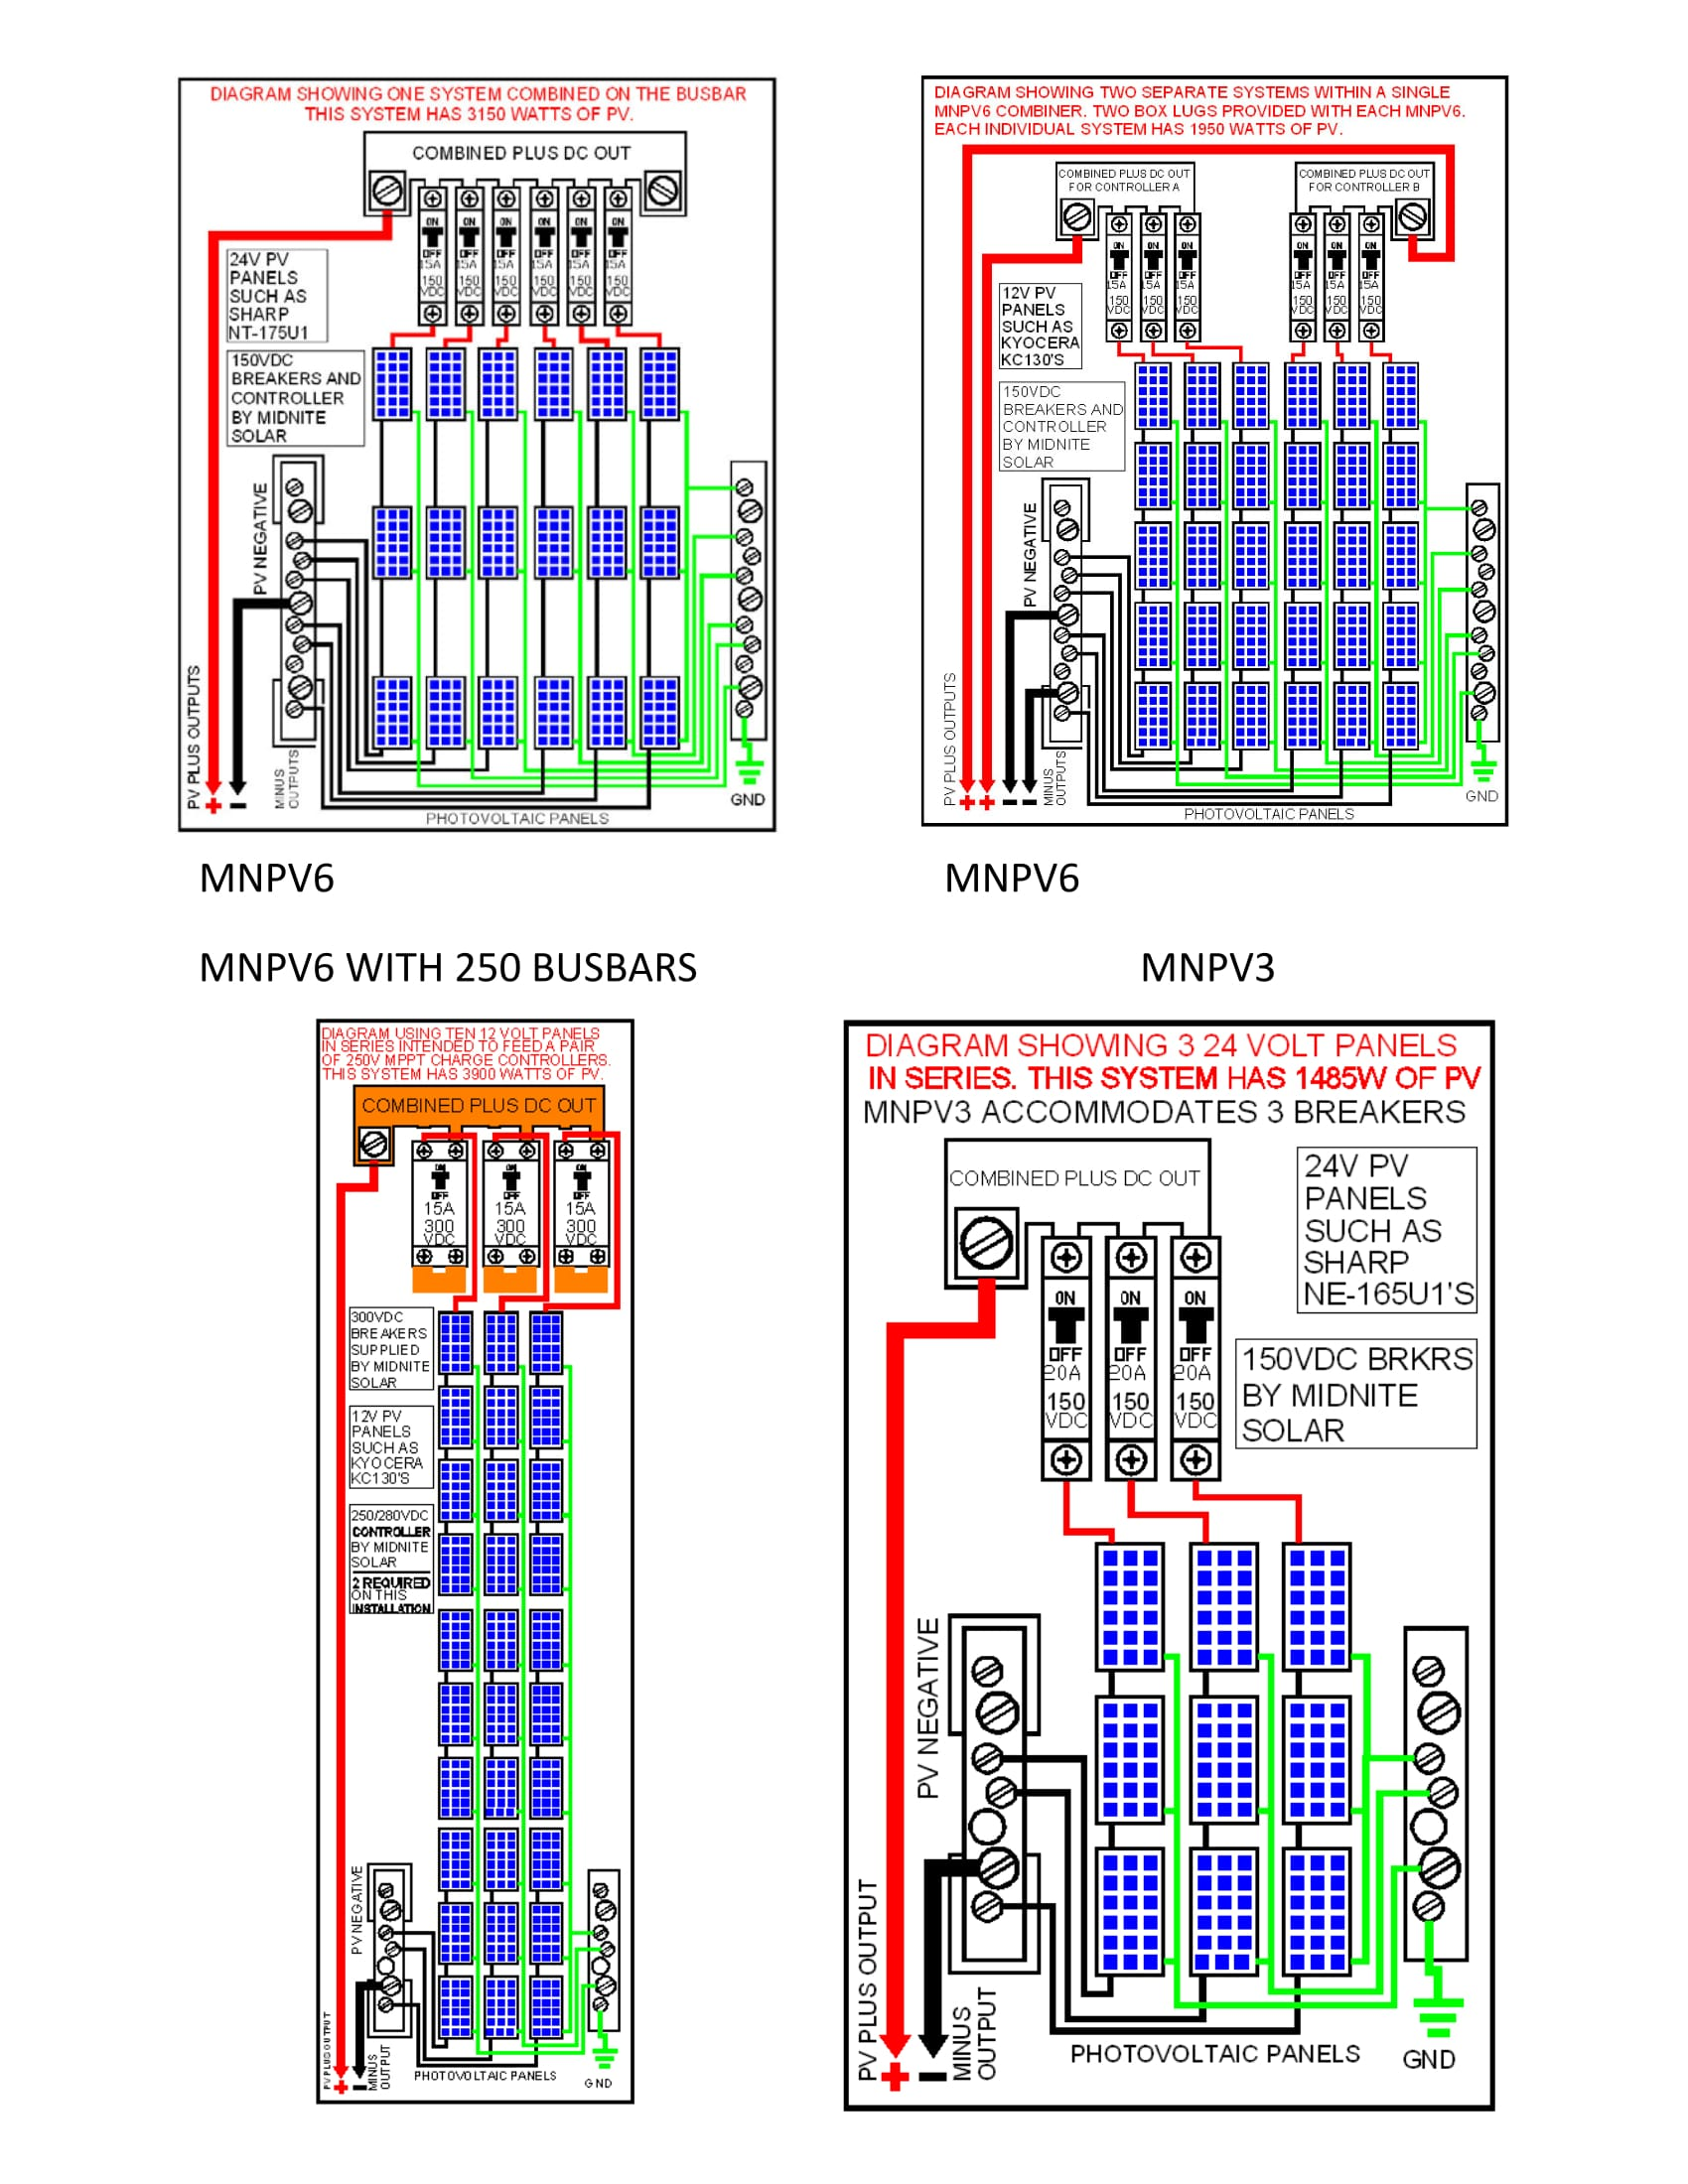 Midnite Pv Combiners Explained W Diagrams on Solar Panel Wiring Diagram